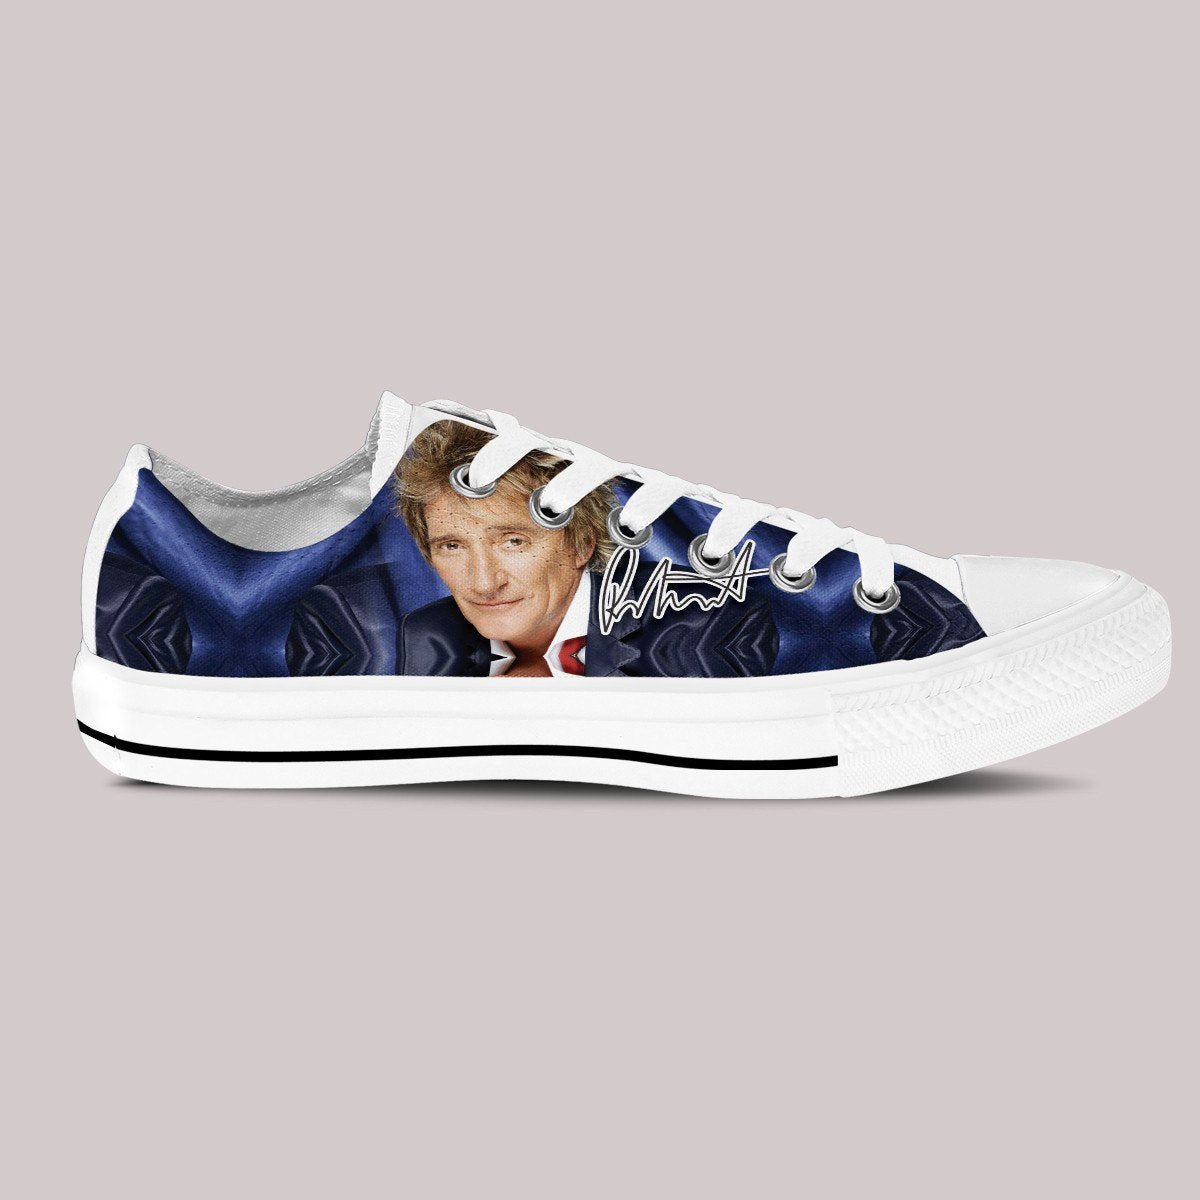 rod stewart ladies low cut sneakers